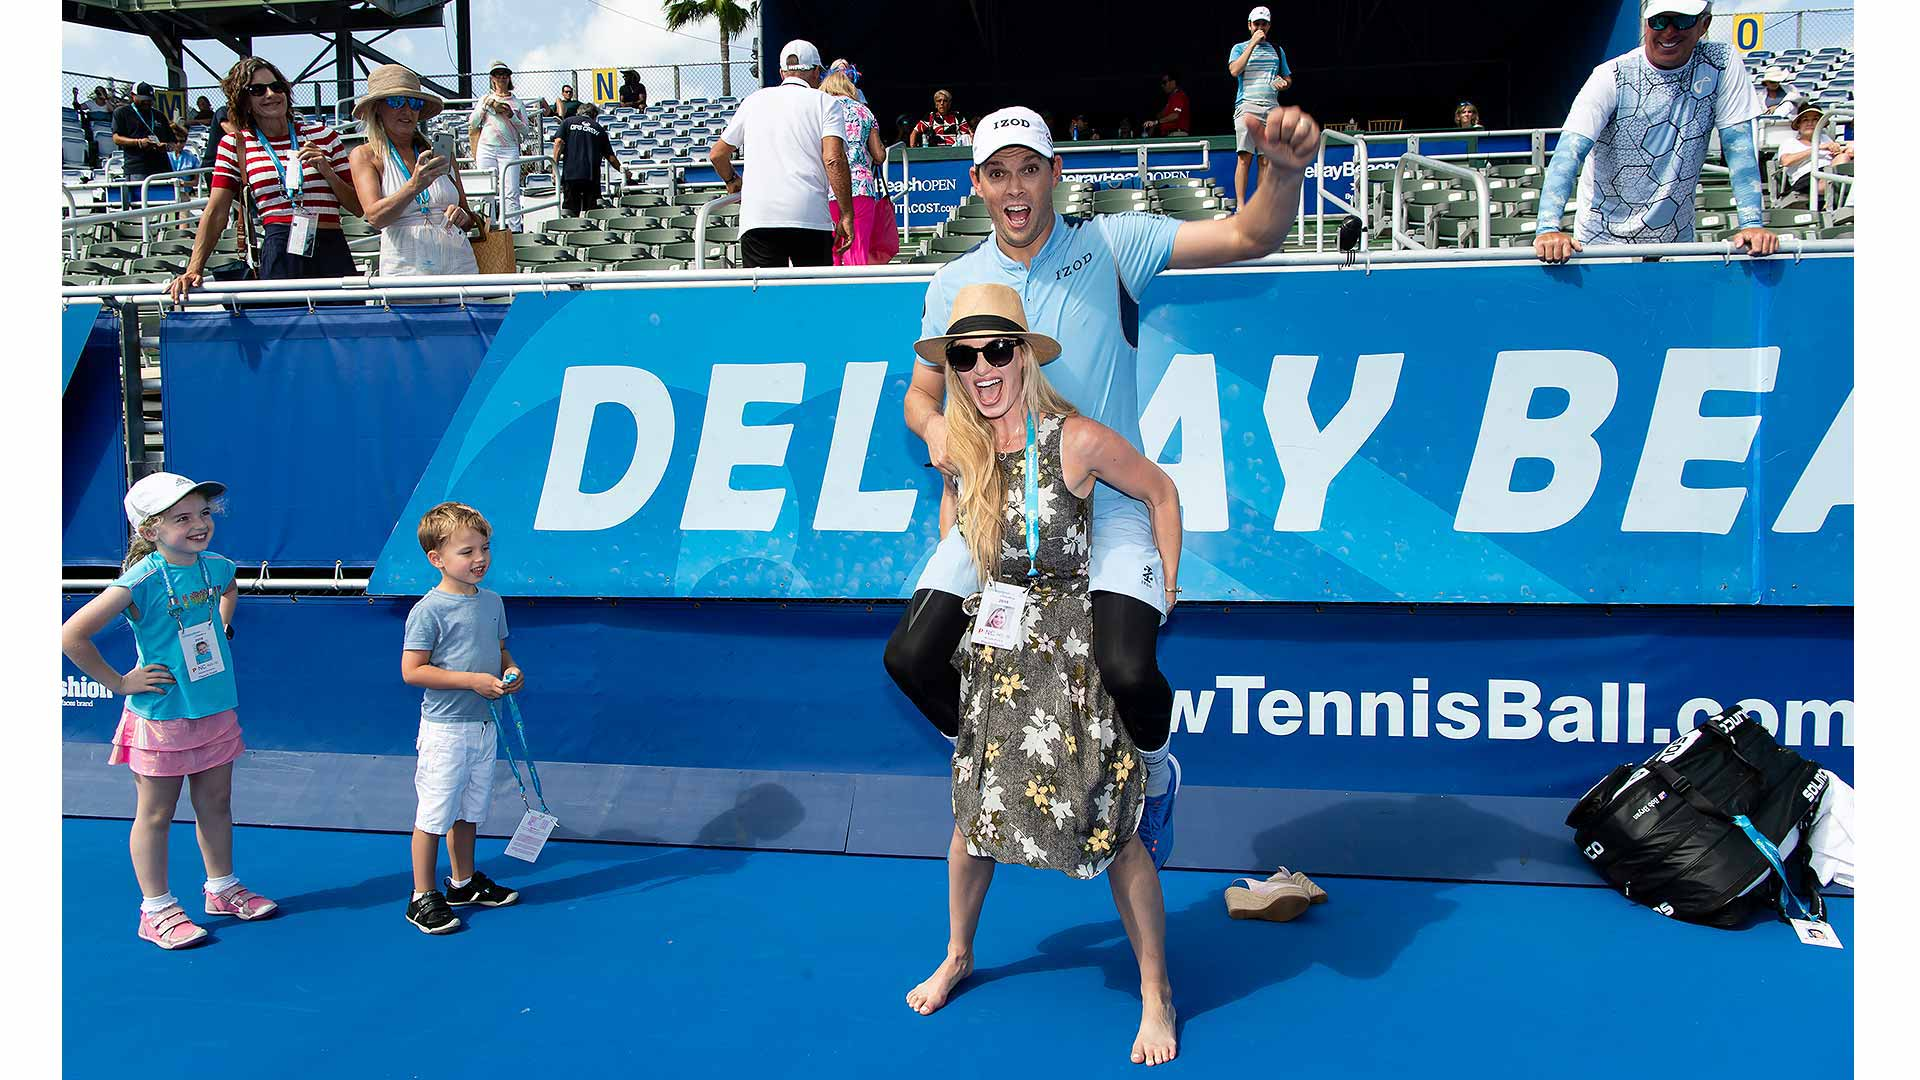 Peter Staples' Best of 2019 pick: <a href='https://www.atptour.com/en/players/bob-bryan/b588/overview'>Bob Bryan</a> receives a piggyback ride from wife Michelle after winning his first title since returning from hip surgery.